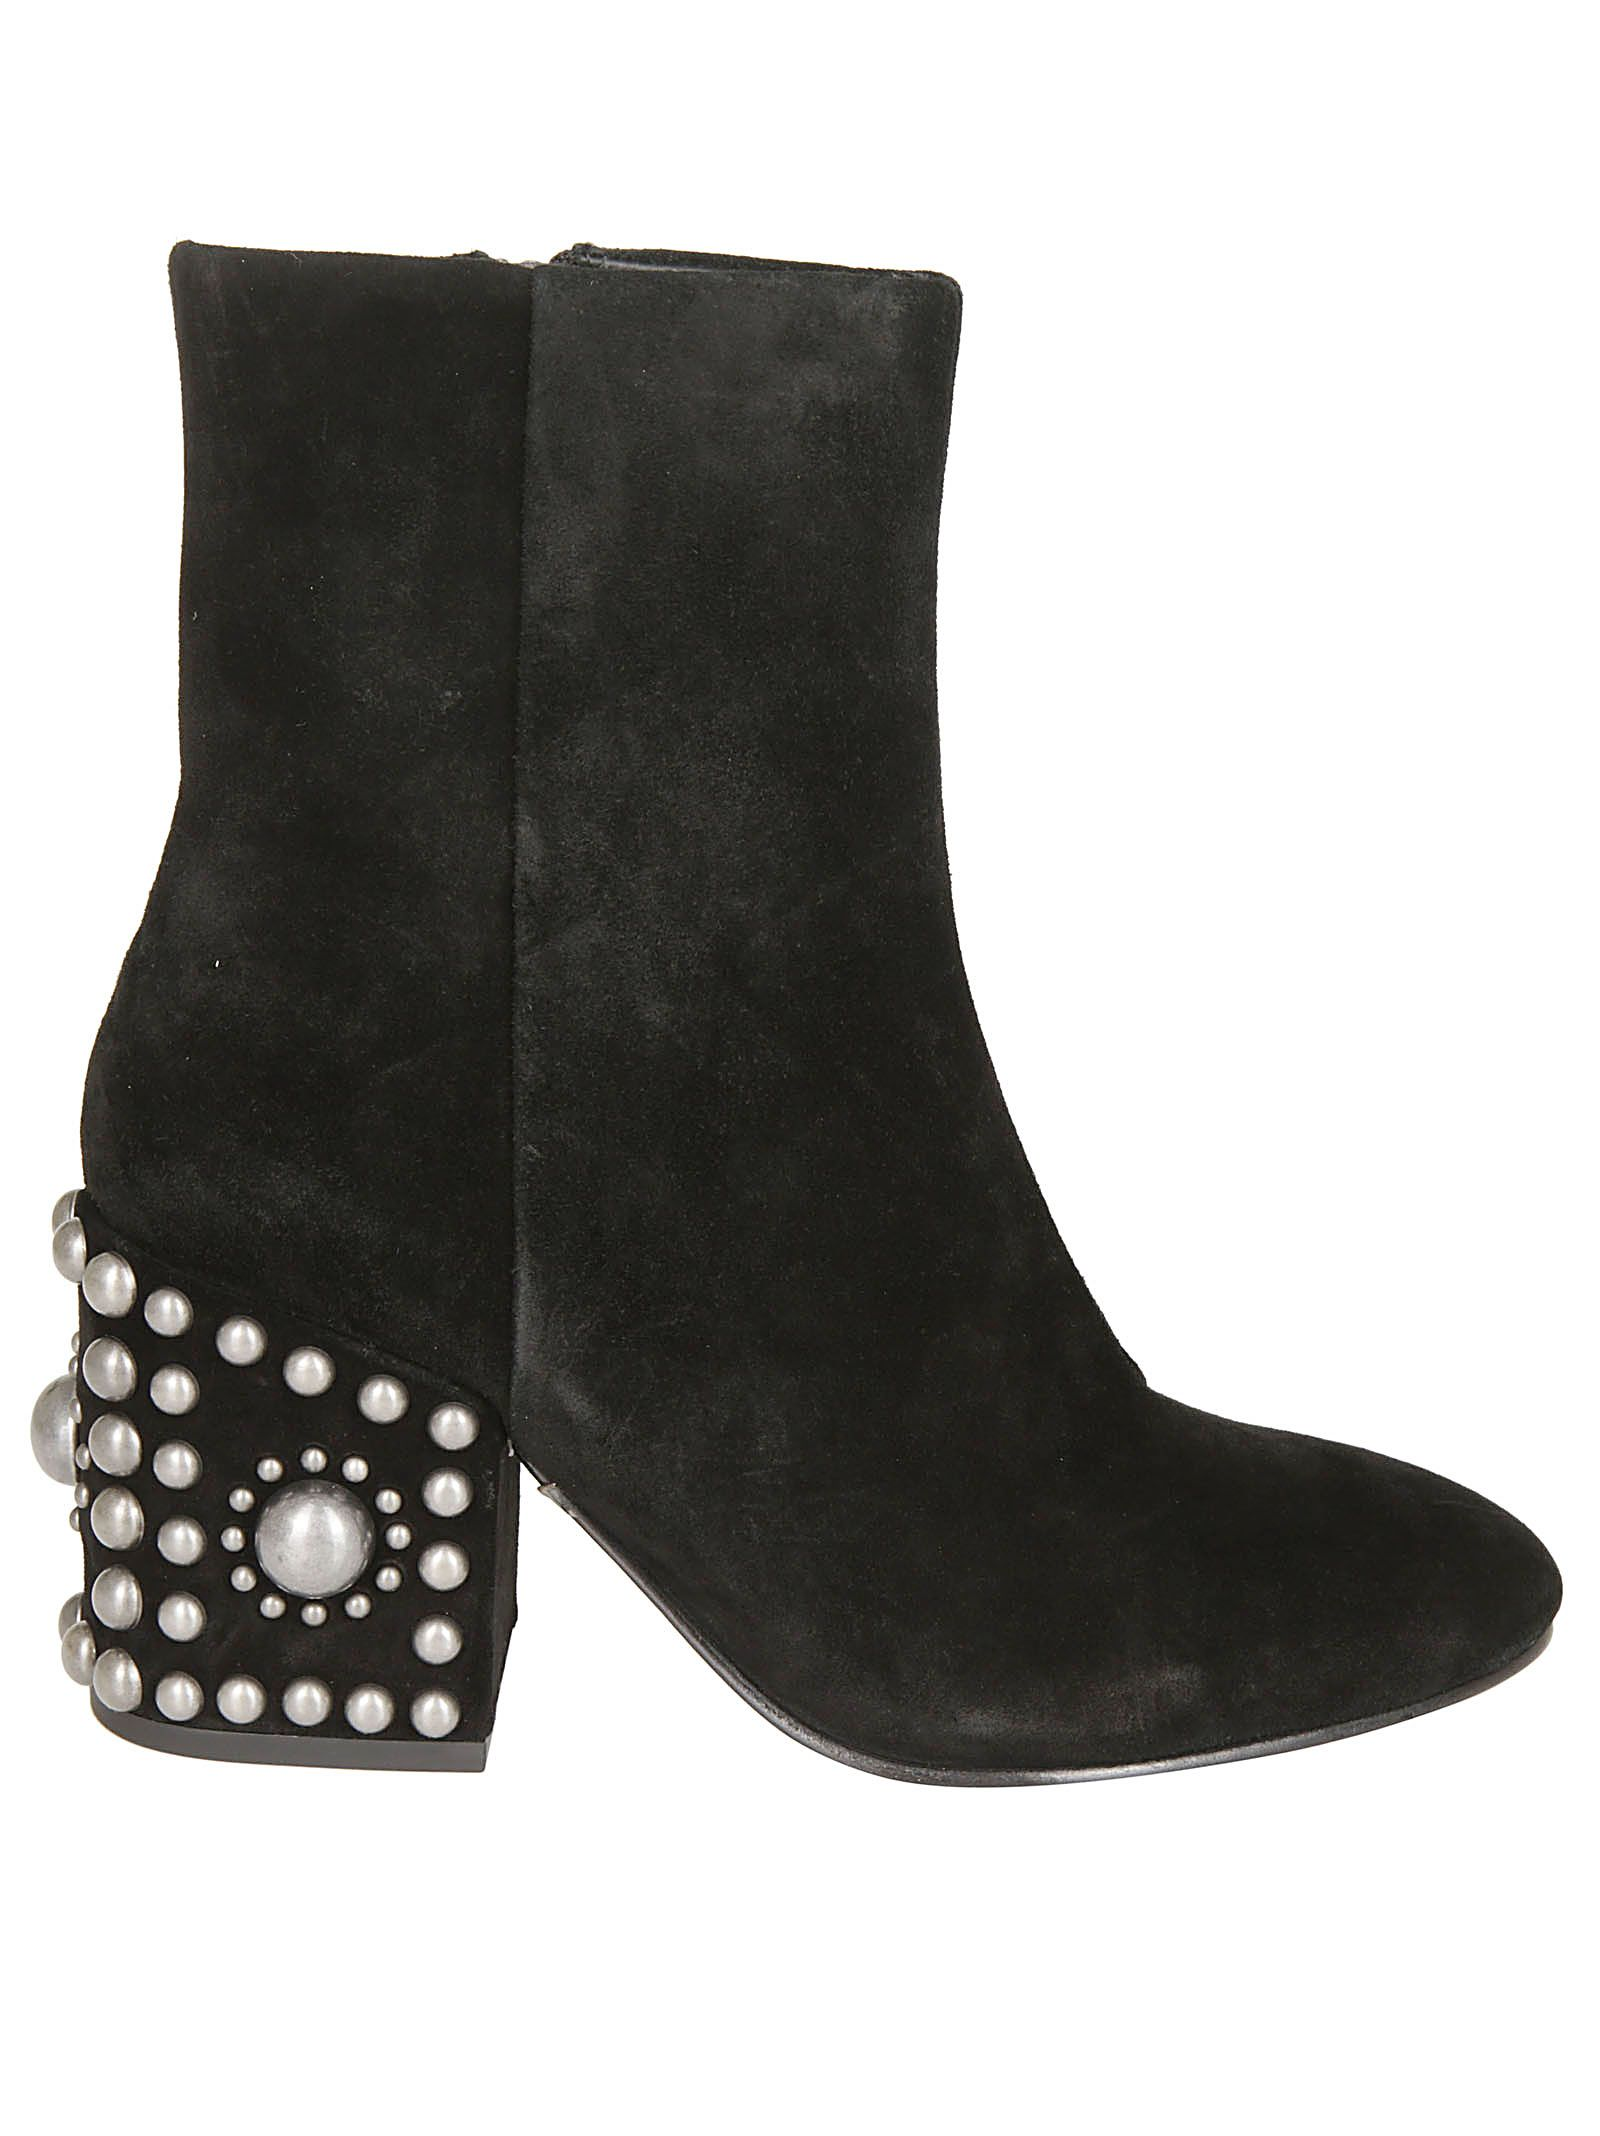 Era Ankle Boots in Black